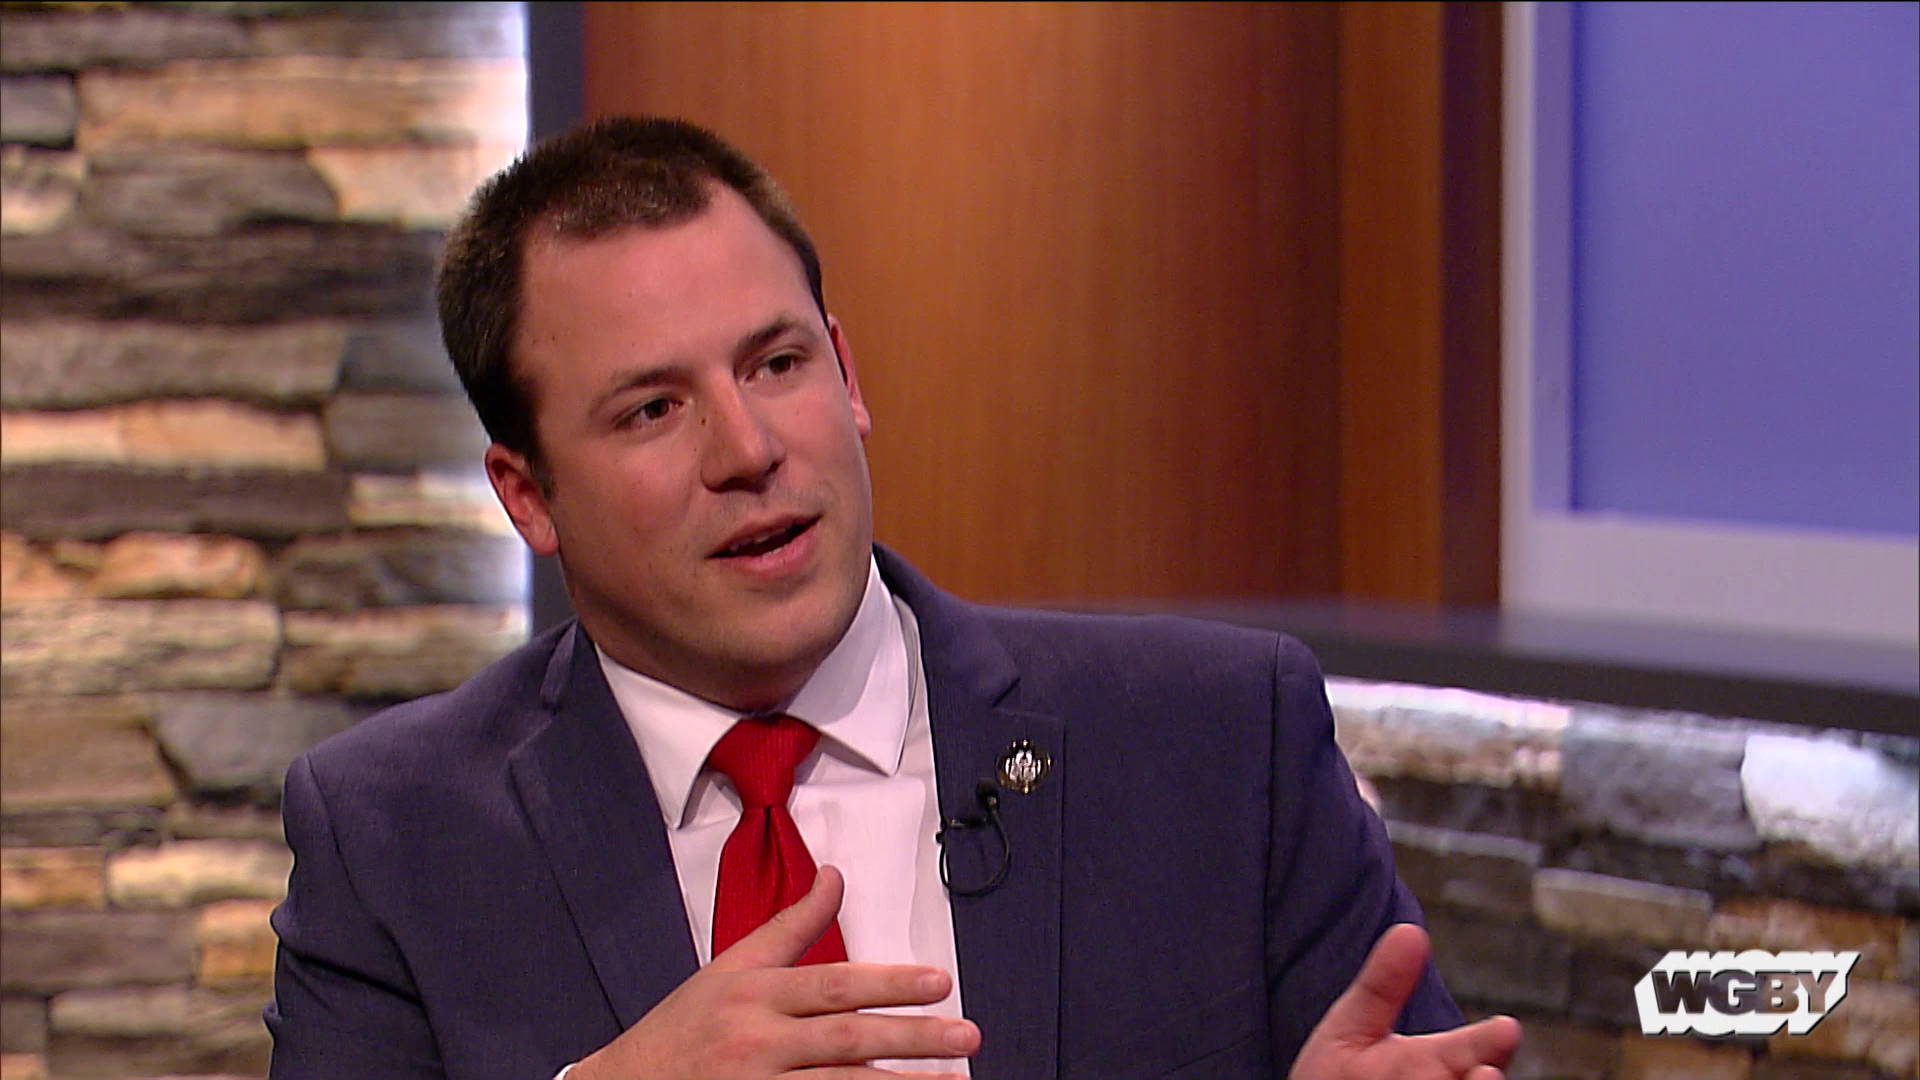 Mayor Will Reichelt discusses his push to bring new businesses to West Springfield, MA by allowing new breweries, distilleries, and wineries to open in the city's industrial zones. Reichelt also explains why he is opposed to a charter school opening in the city.